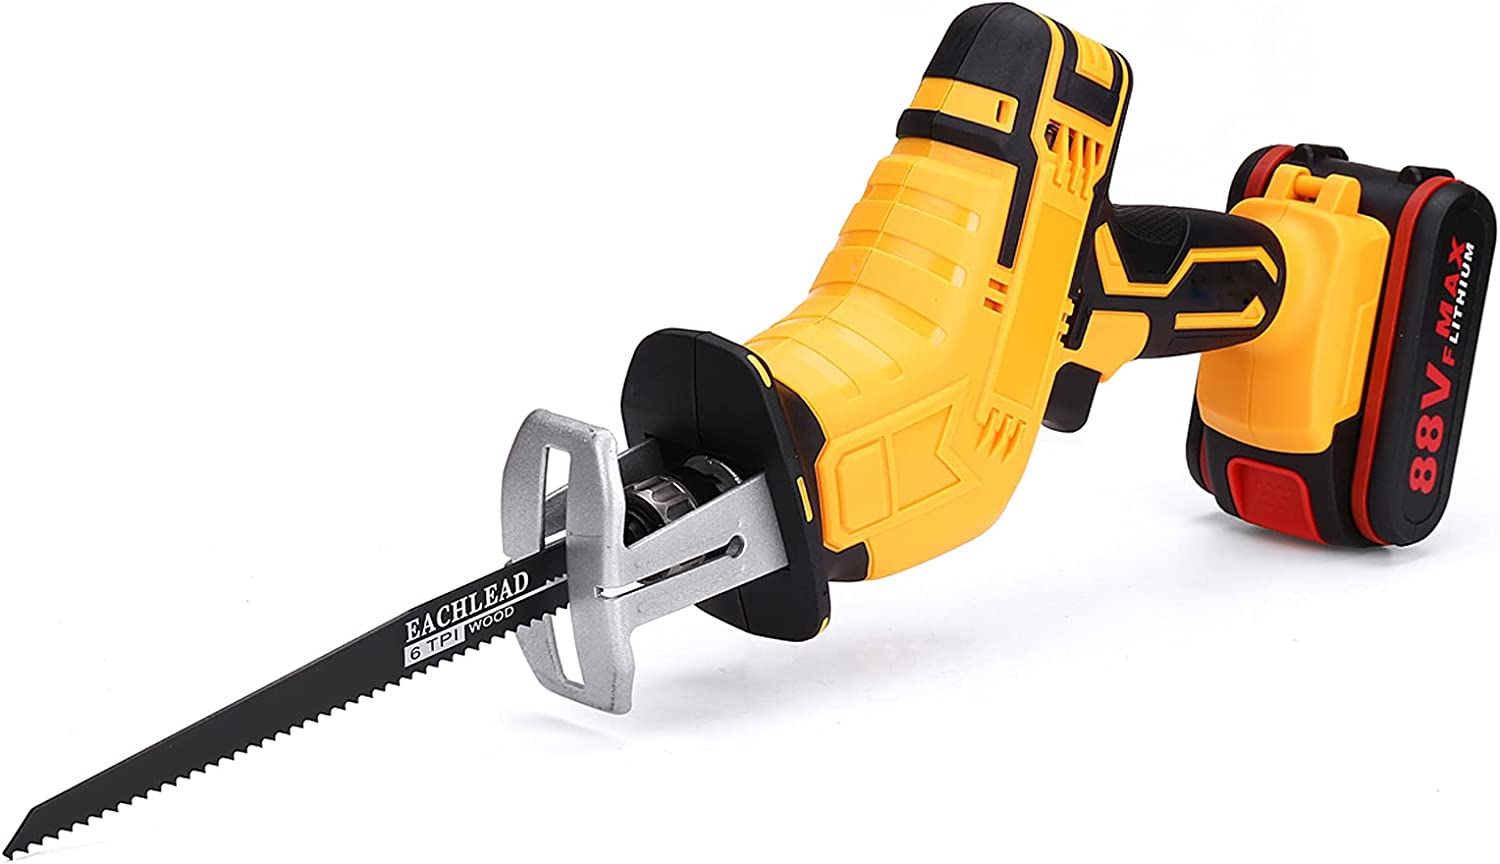 QWERTOUR 88V Cordless Max 63% OFF Animer and price revision Reciprocating Saw Wood Pipe Handsaw Metal